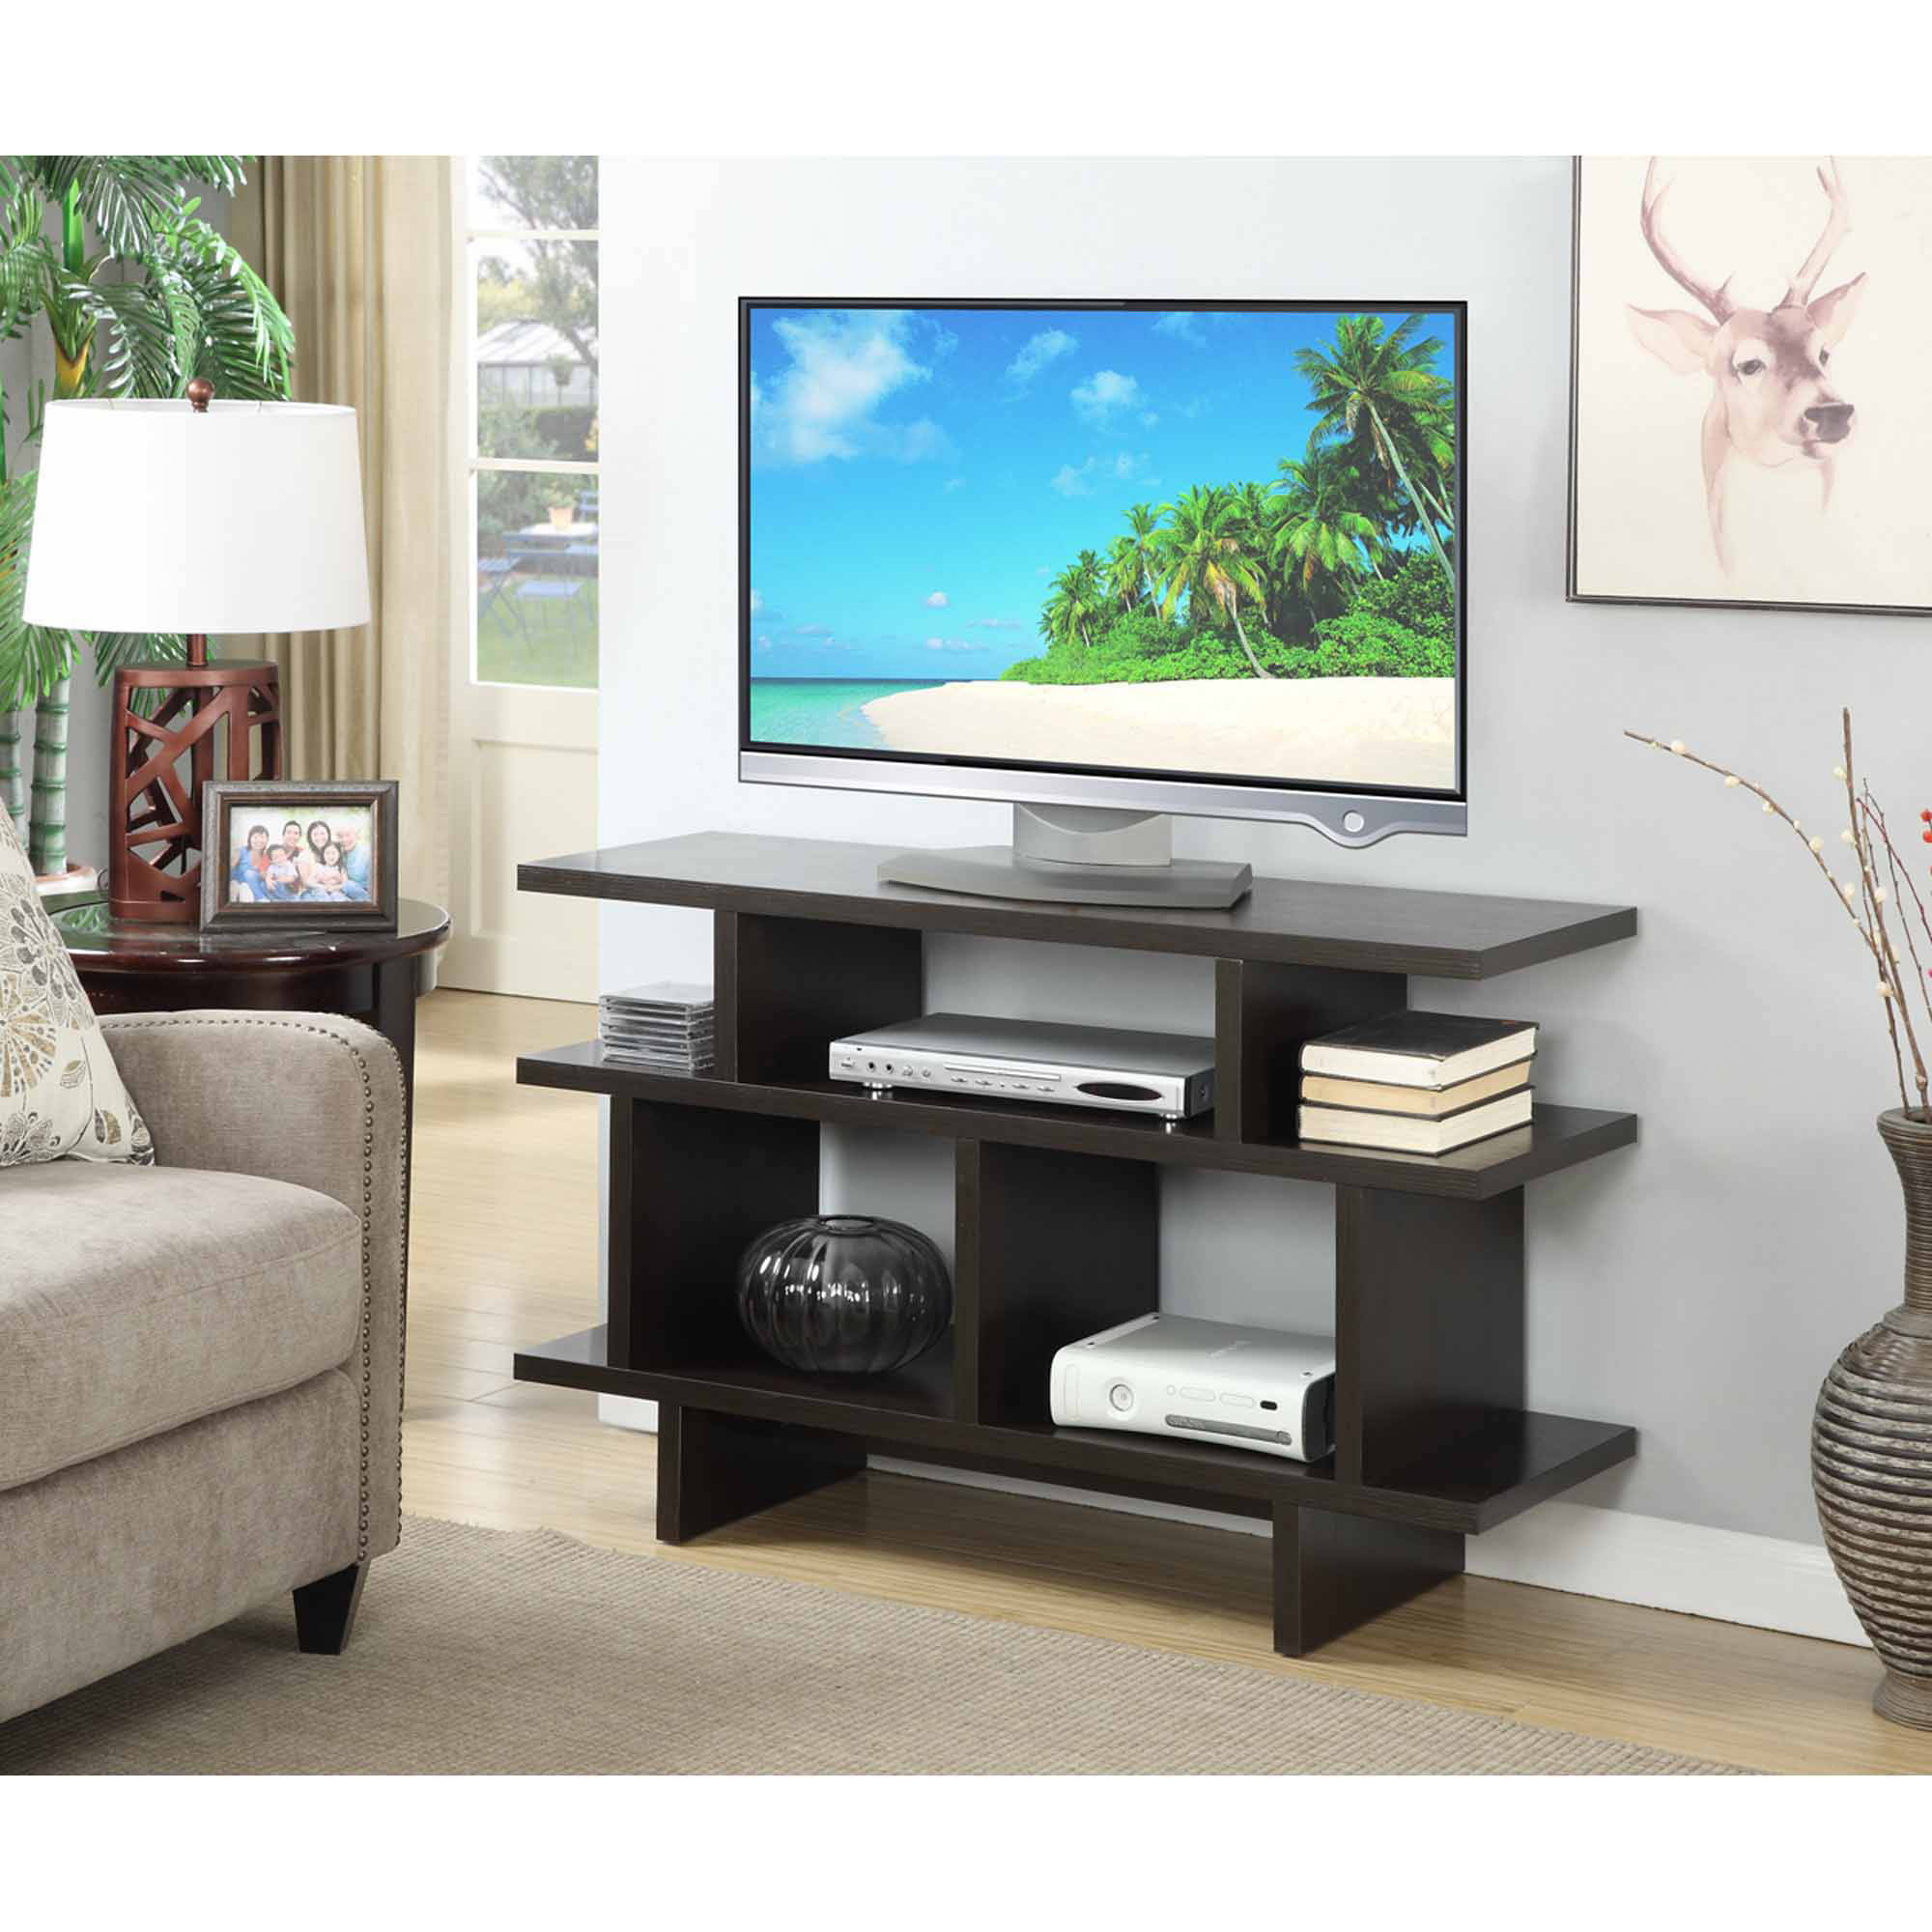 "Convenience Concepts Key West 48"" TV Stand Console, Multiple Colors"